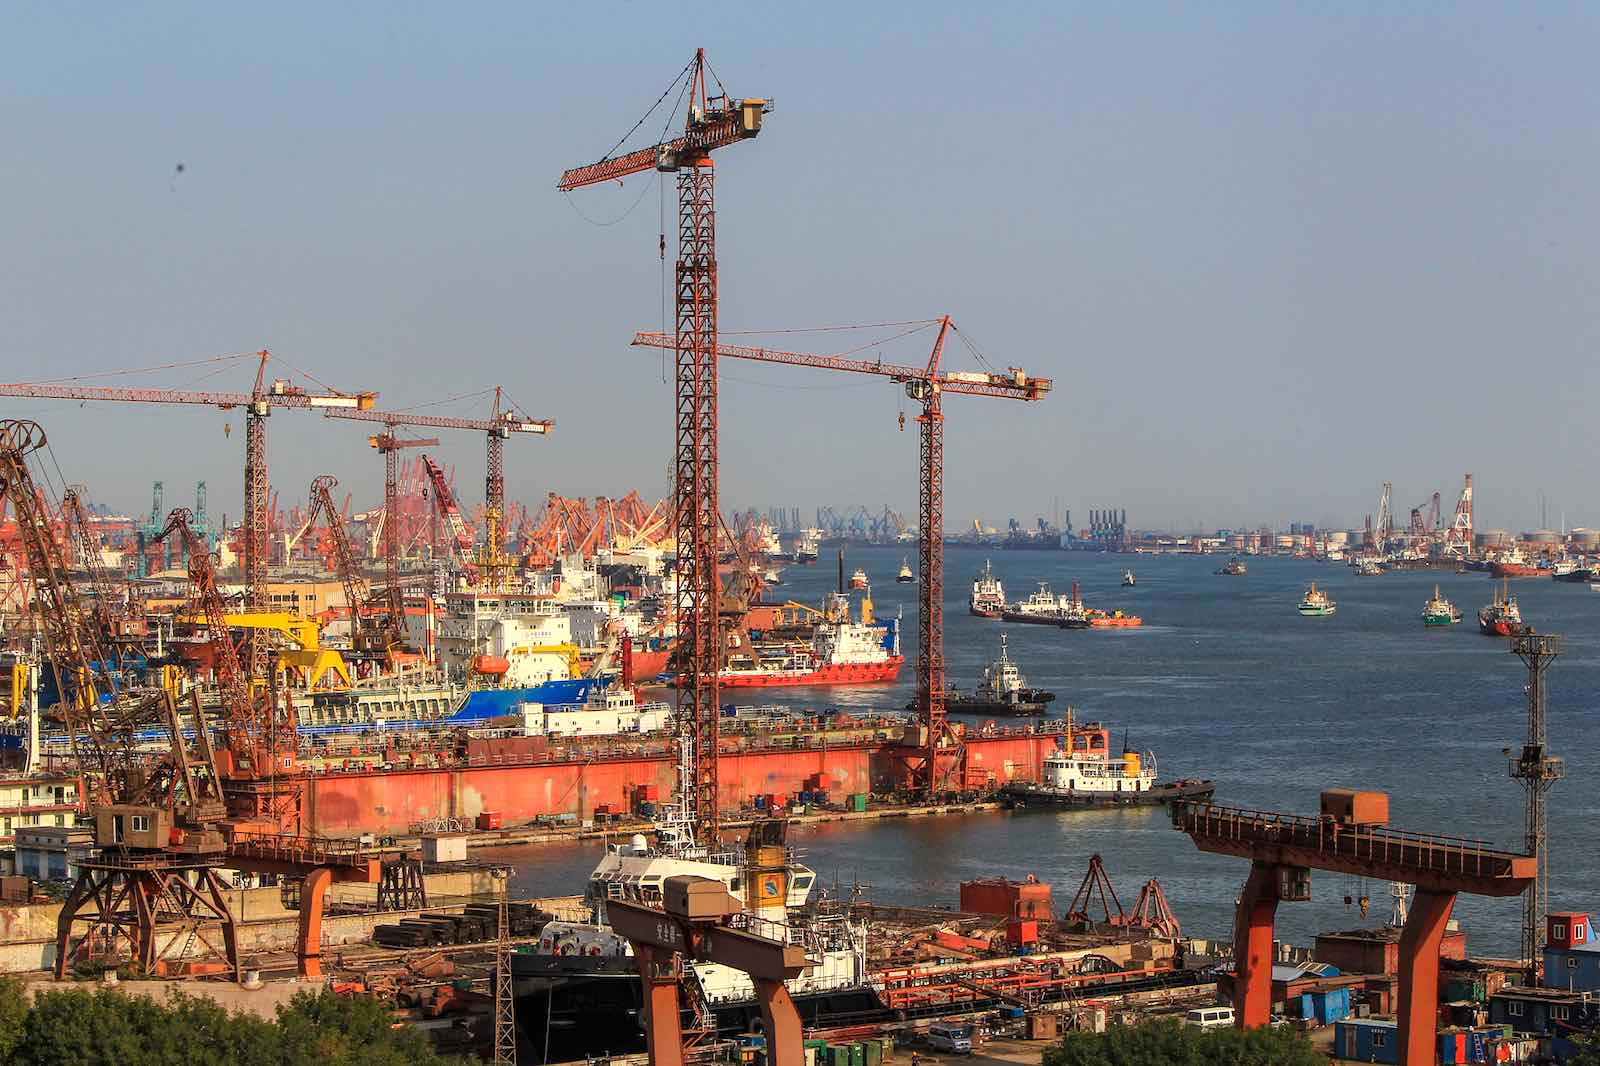 The Port of Tianjin, the largest port in northern China and the main maritime gateway to Beijing (Photo: ADB/Flickr)